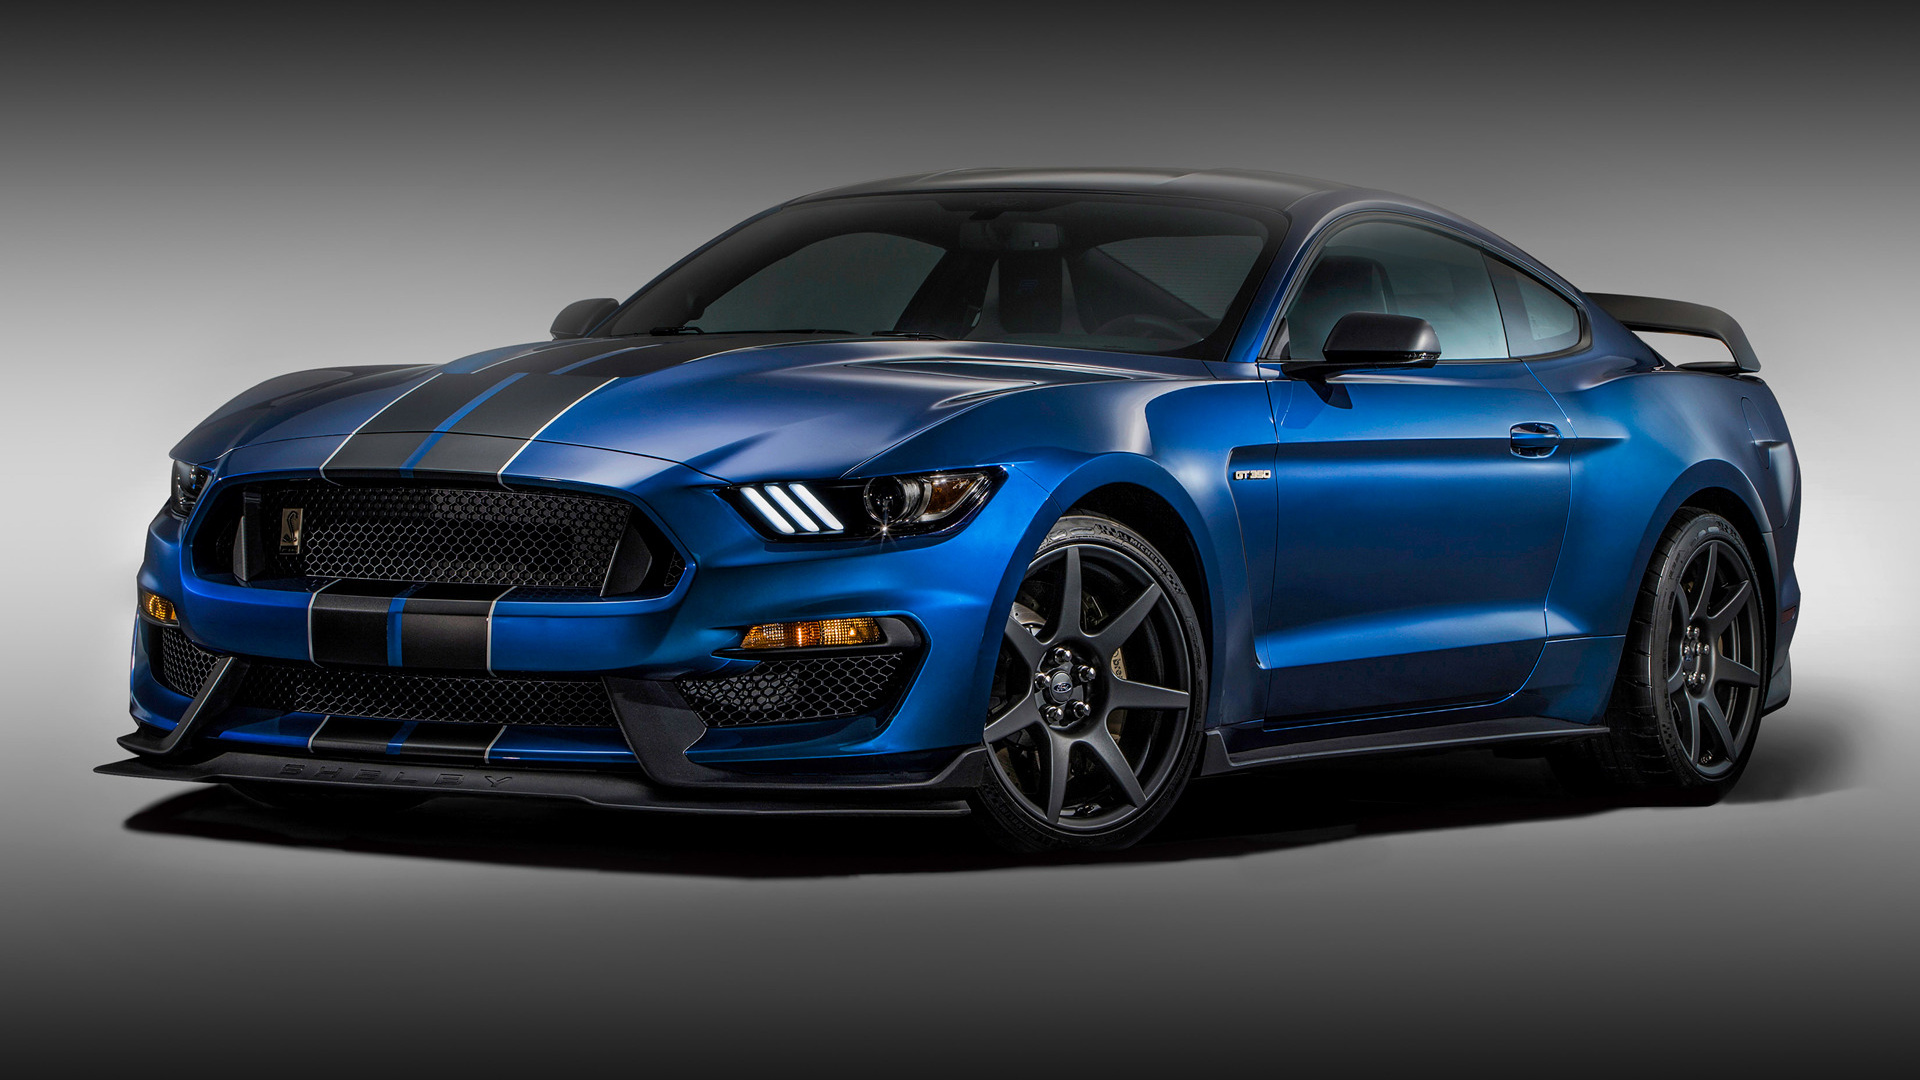 shelby gt350r mustang 2016 wallpapers and hd images